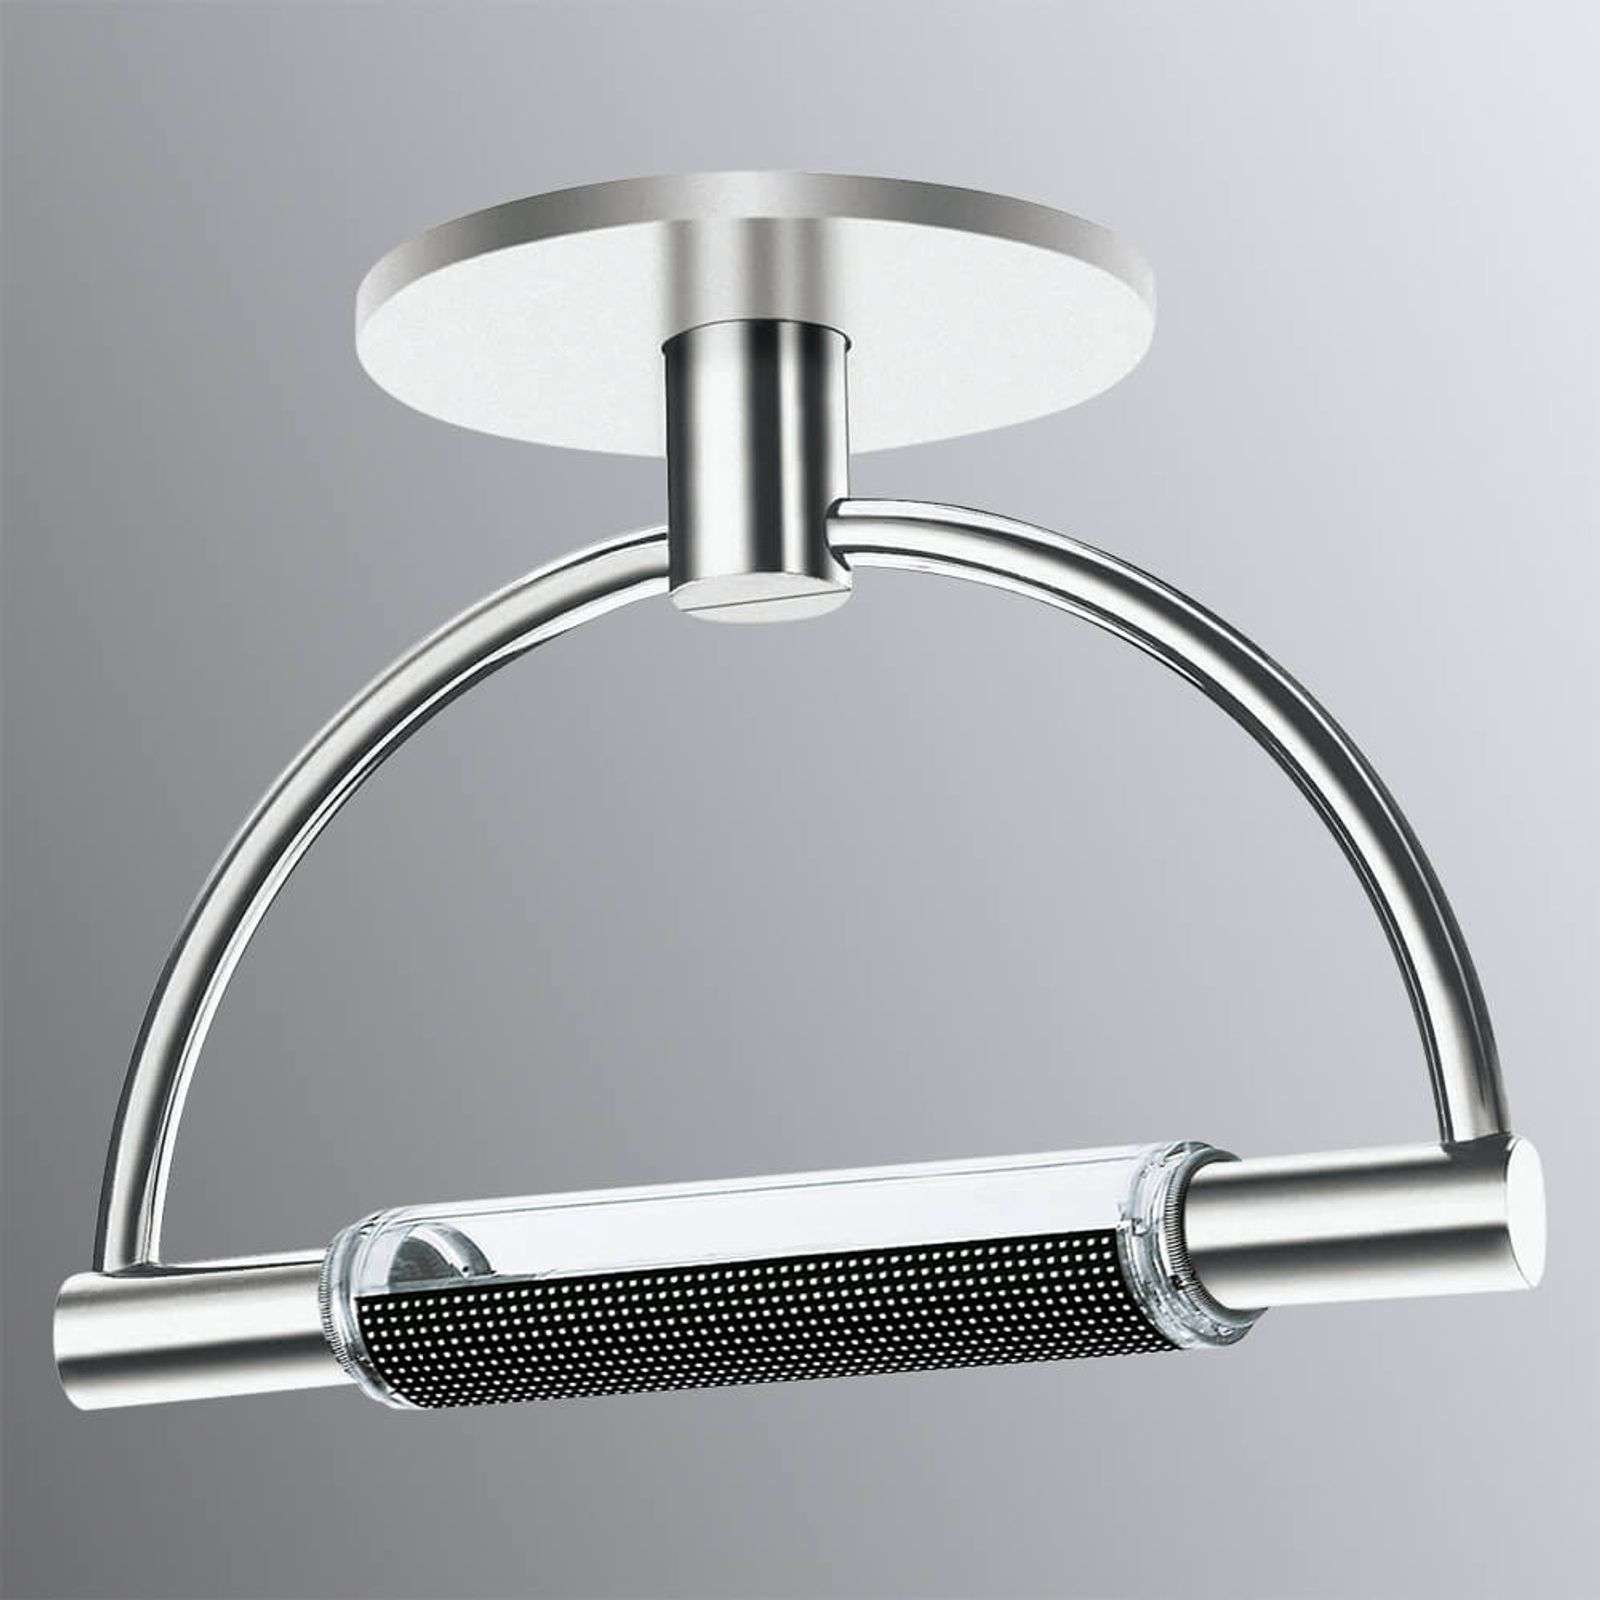 Plafonnier LED Gradi dimmable, finition chromée